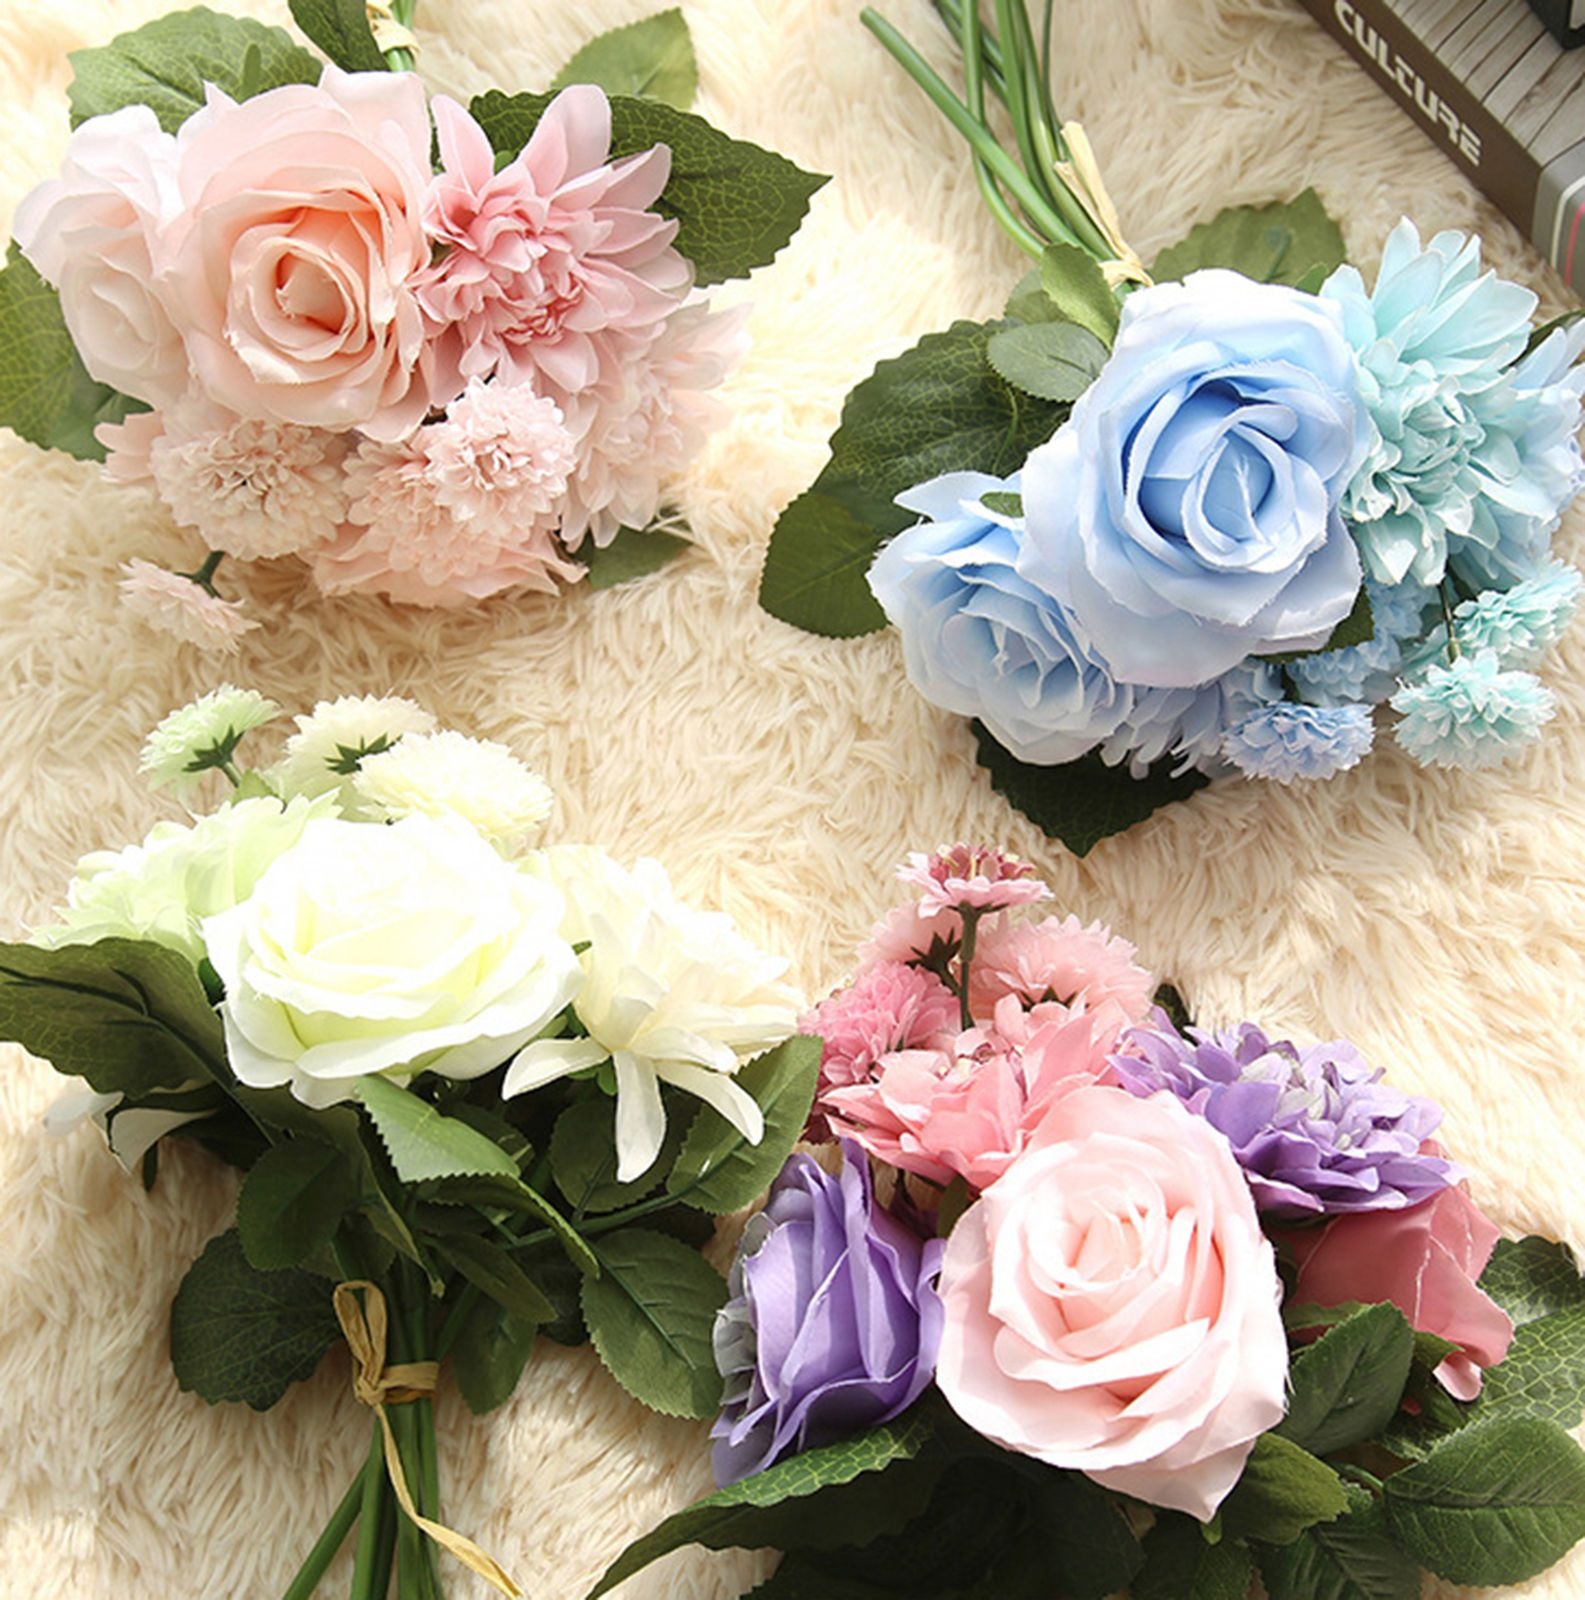 Wedding decorations without flowers  Artificial Fake Rose Daisy Dahlia Silk Flower Bridal Home Wedding